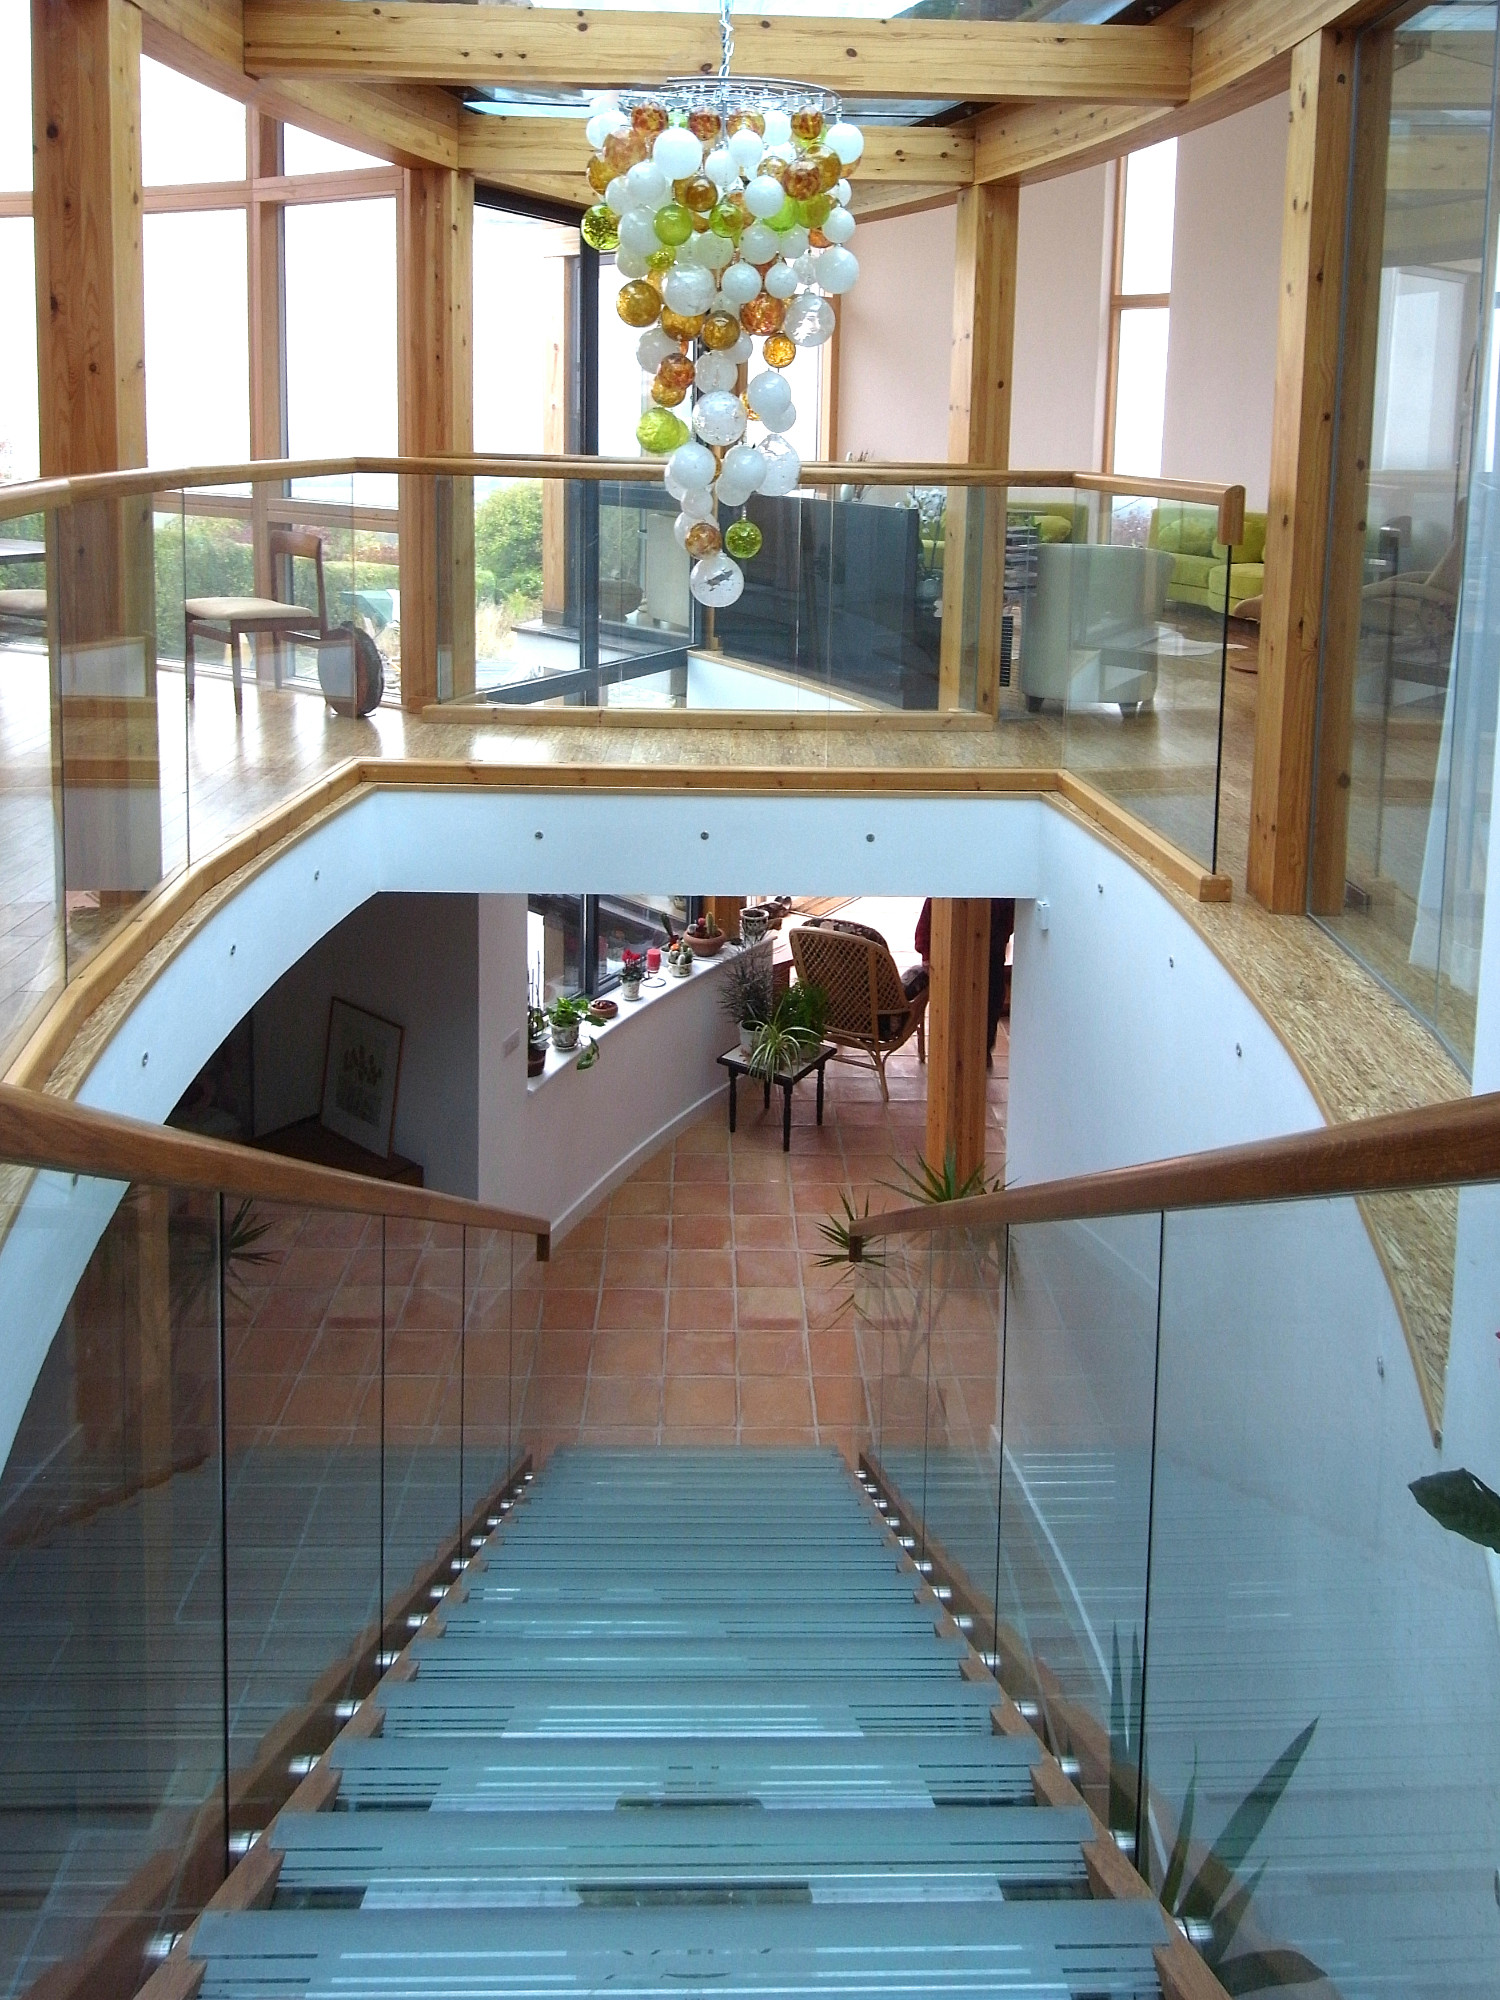 Extra wide glass stairs